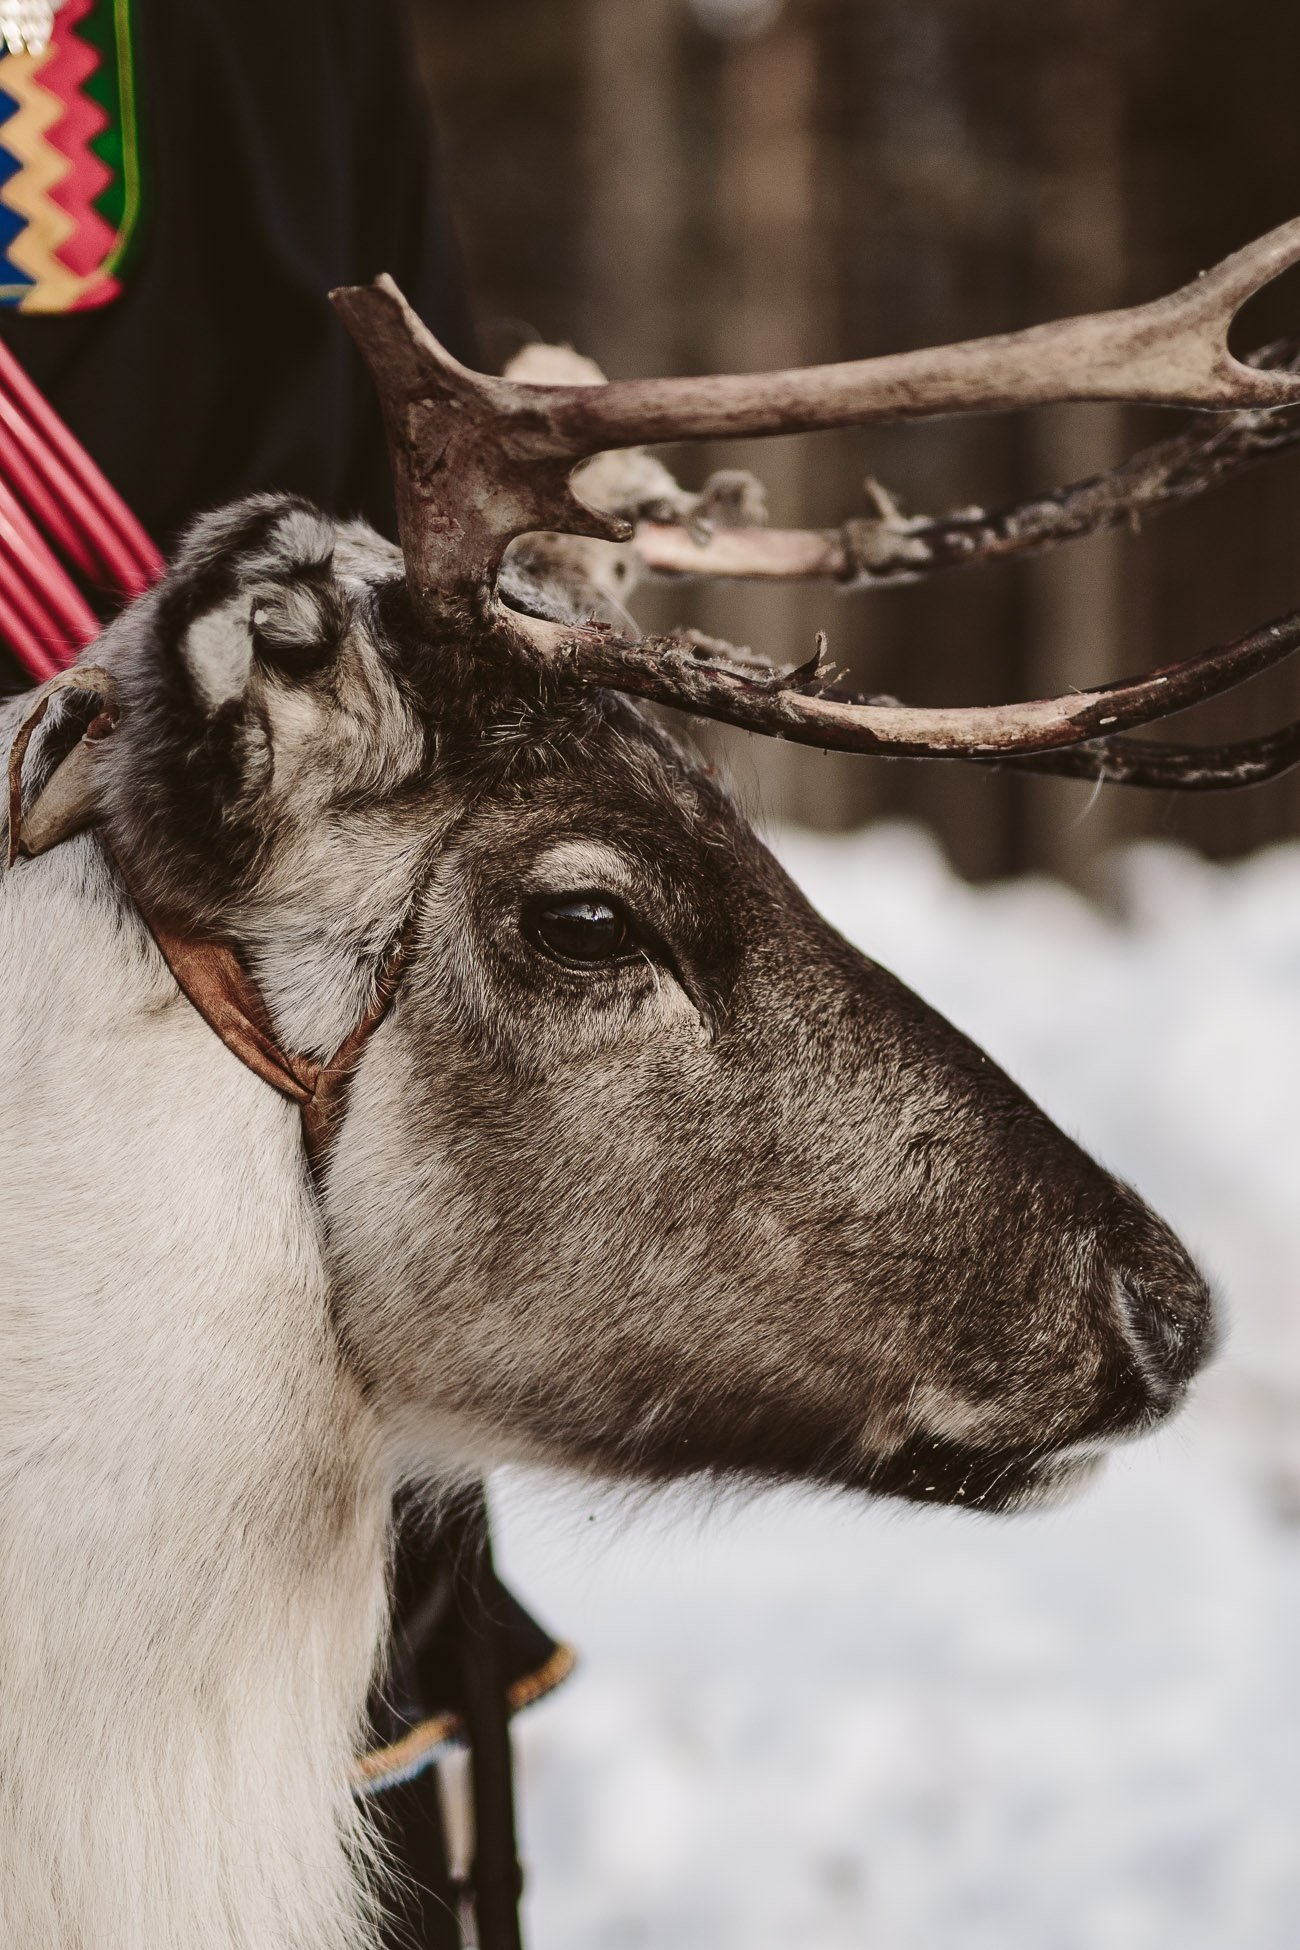 Lillebrö the reindeer in Swedish Lapland